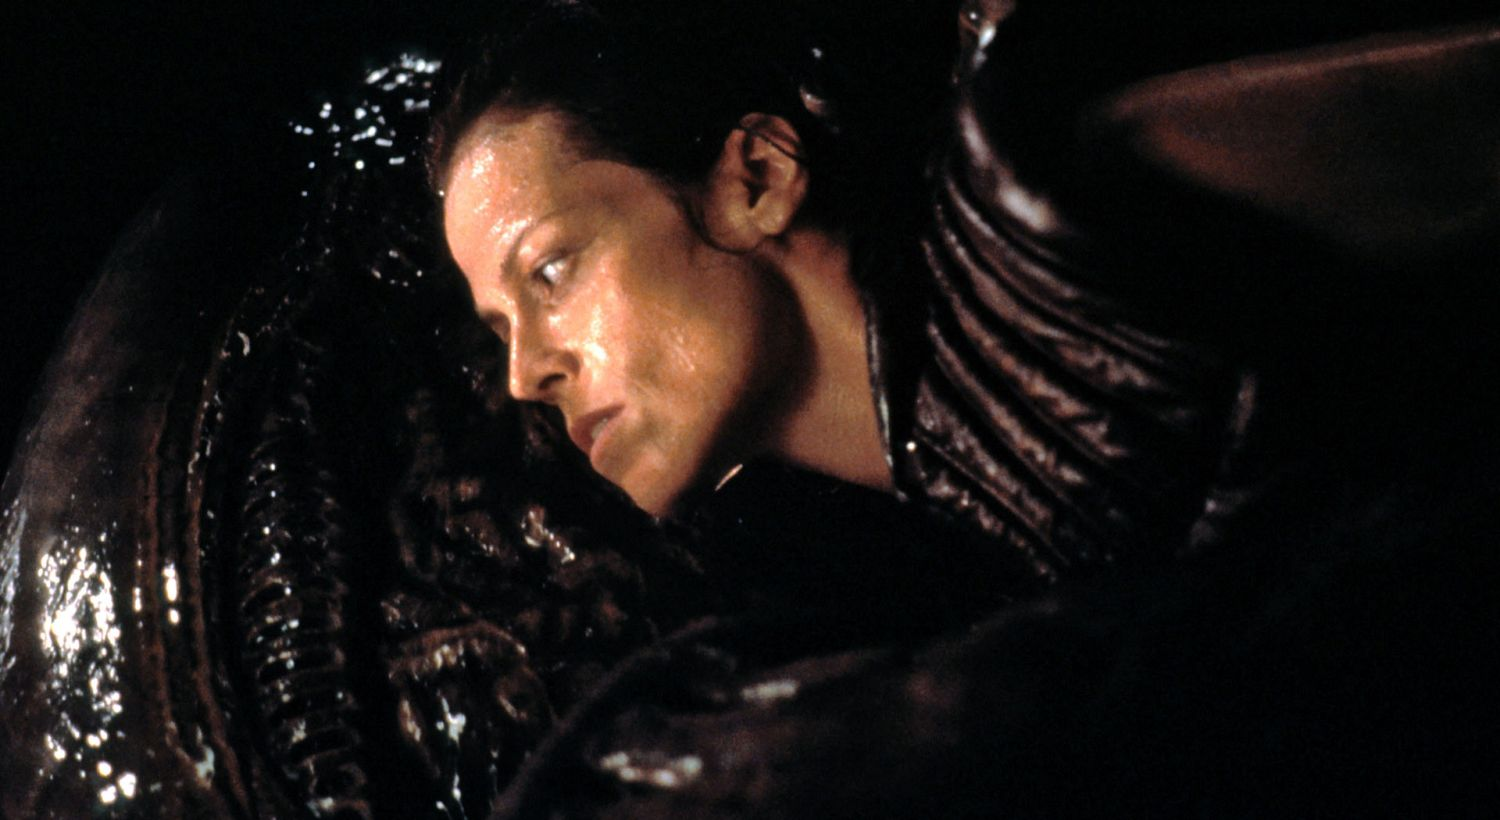 Alien Resurrection Theatrical Or Special Edition This